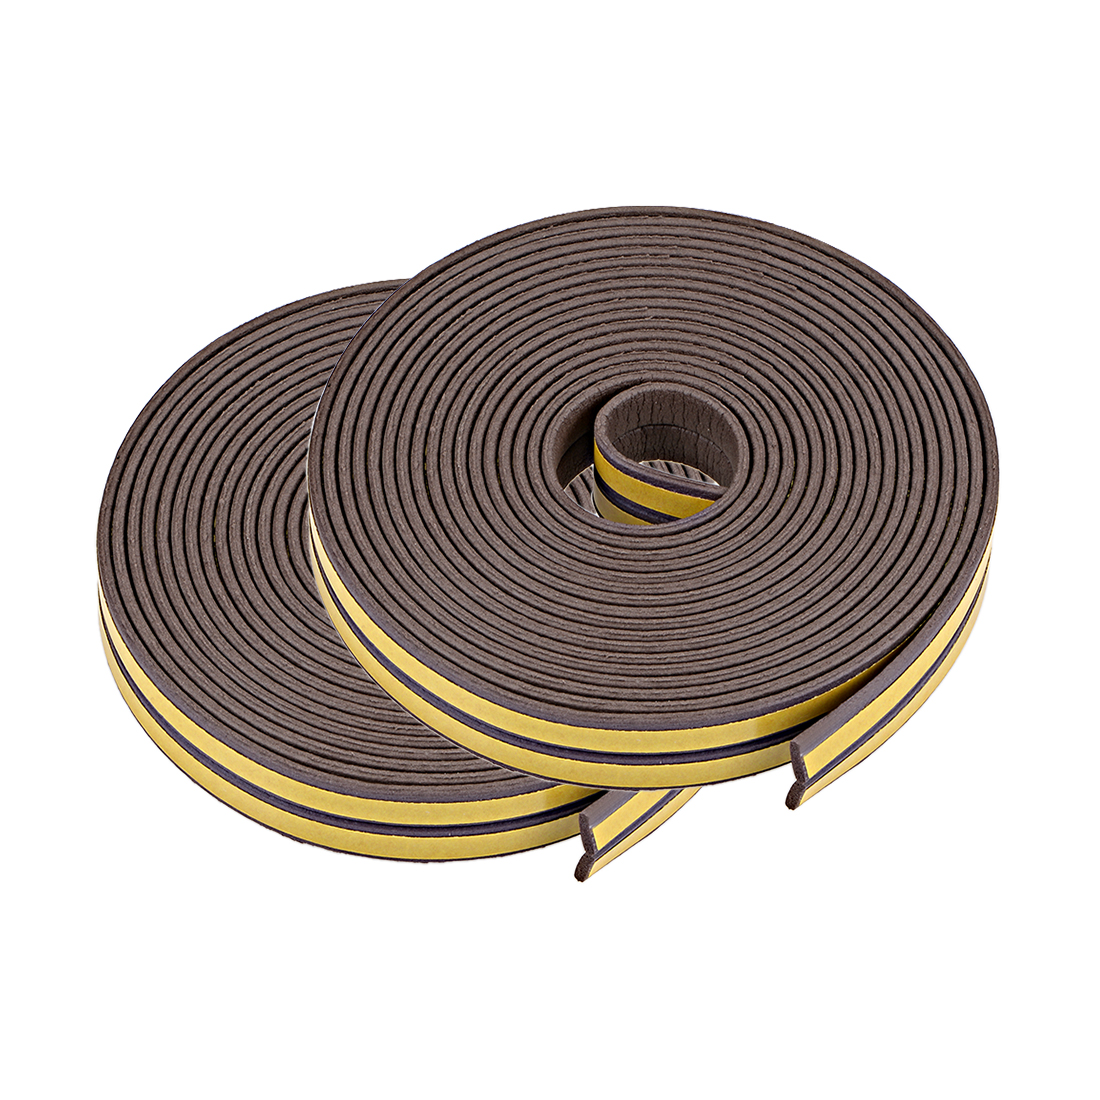 Foam Tape Adhesive 9mm Wide 2mm Thick, Total 52 Feet Brown 4Pcs